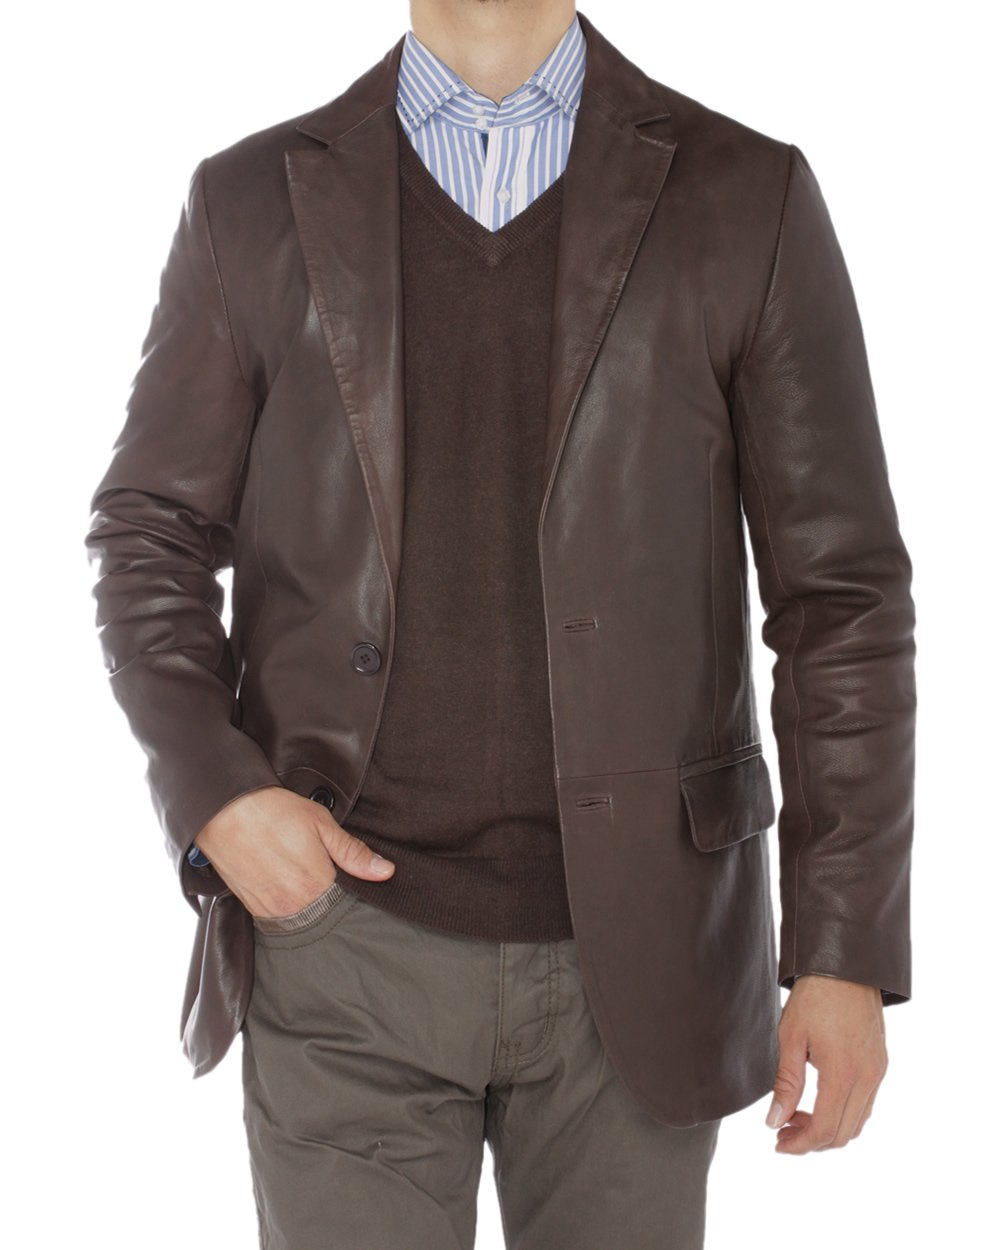 Luciano Natazzi Mens 2 Button Modern Fit Nappa Leather Blazer Center Vent Jacket (Large / US 40-42, Brown)